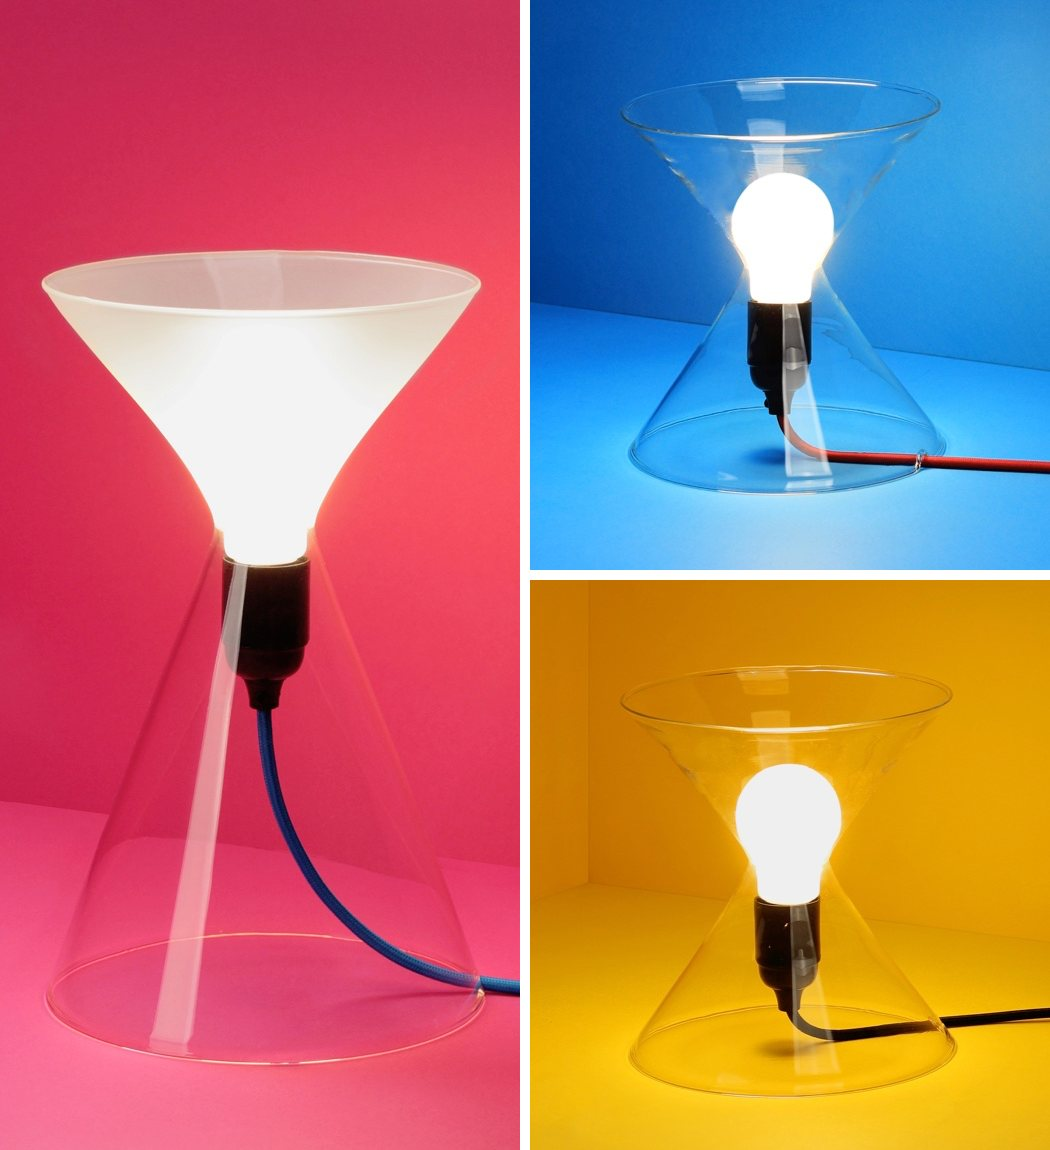 jal_just_another_lamp_04